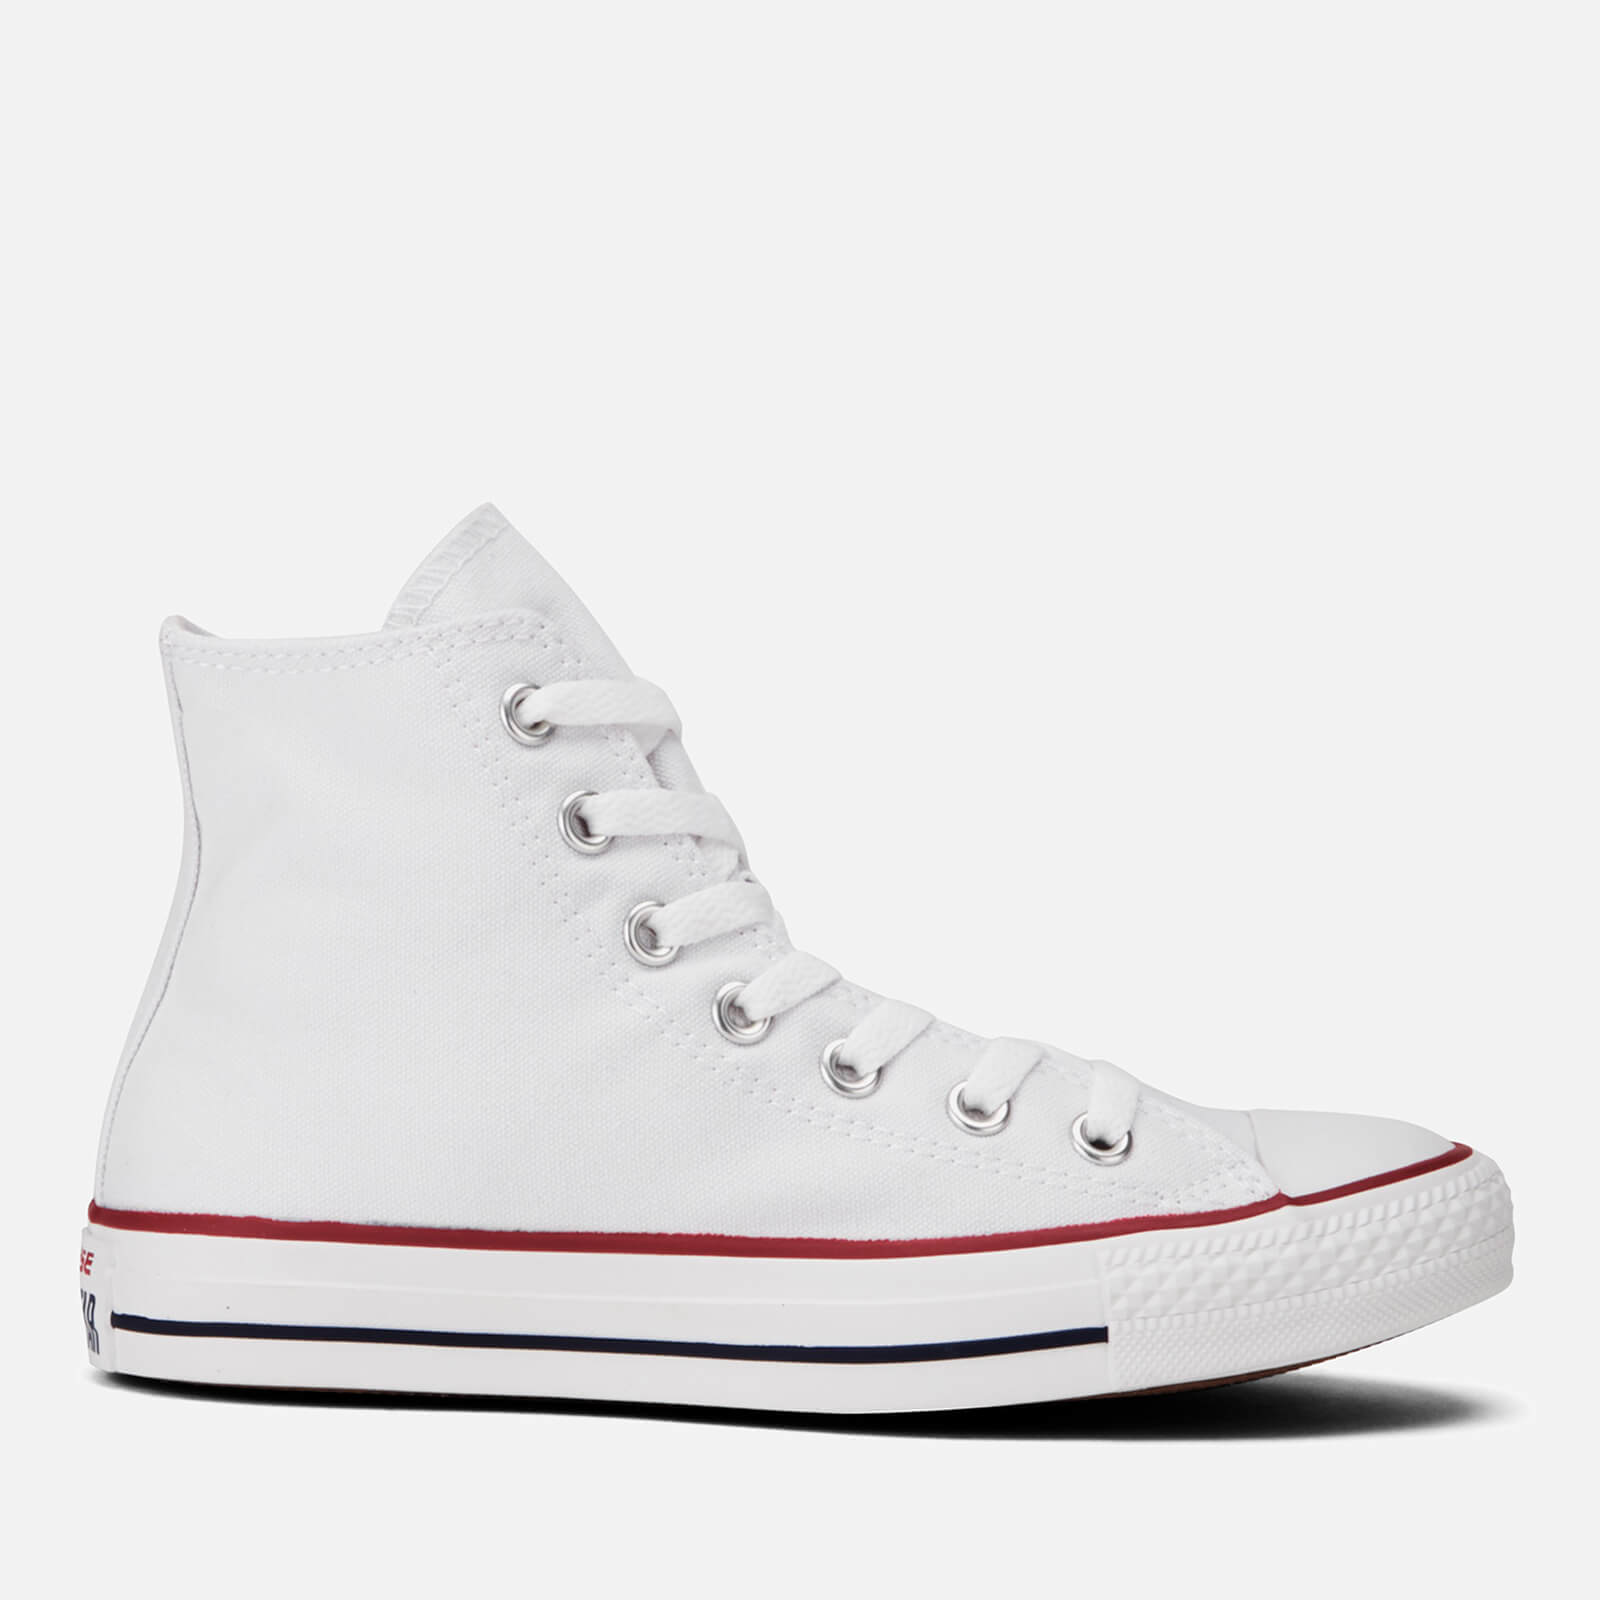 Converse Chuck Taylor All Star Hi-Top Trainers - Optical White - UK 6